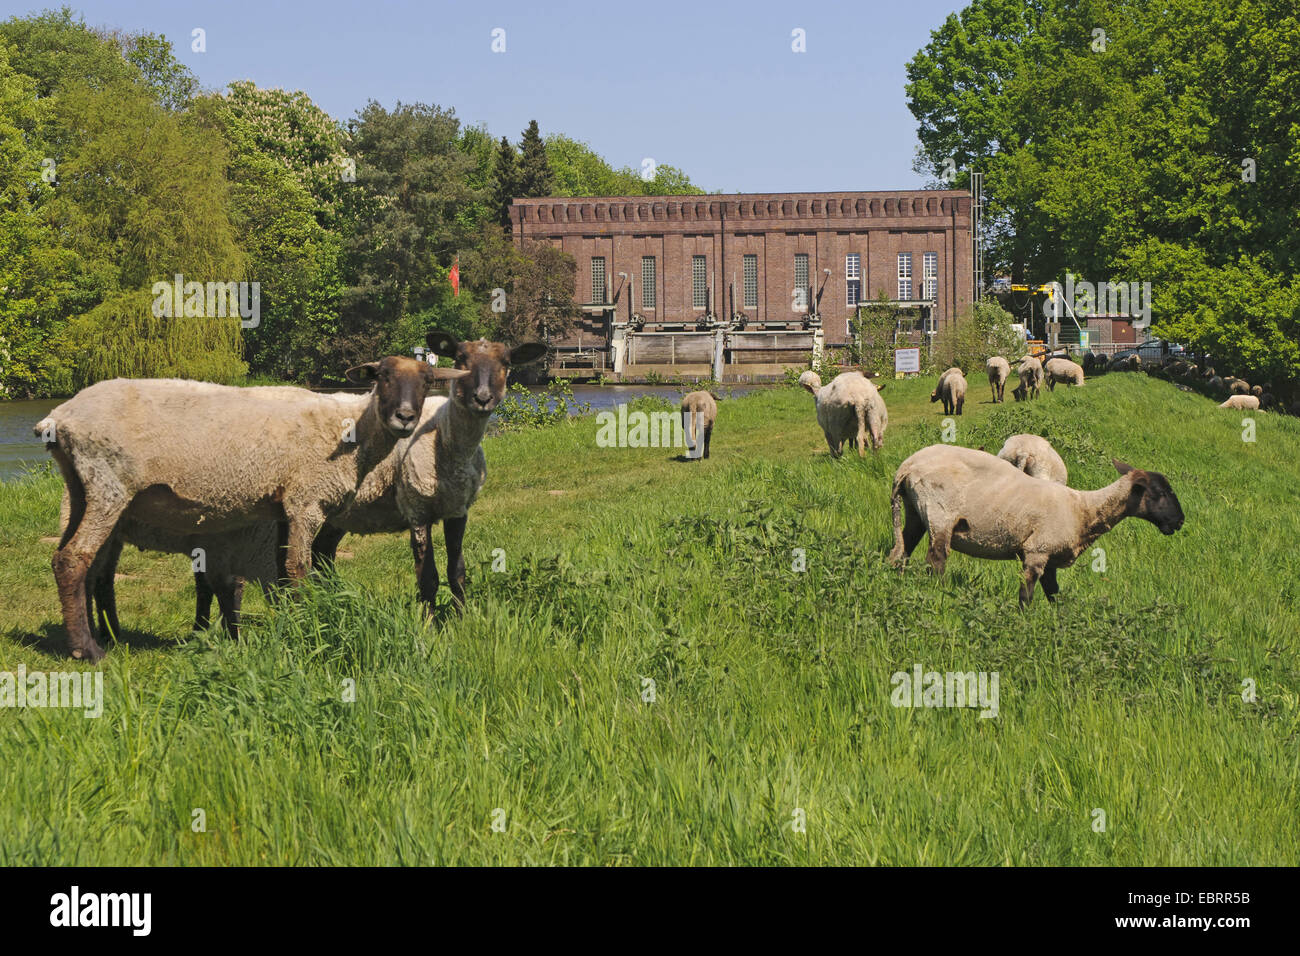 domestic sheep (Ovis ammon f. aries), herd on the dyke at the hydroelectric power station at river Hunte, Germany, - Stock Image